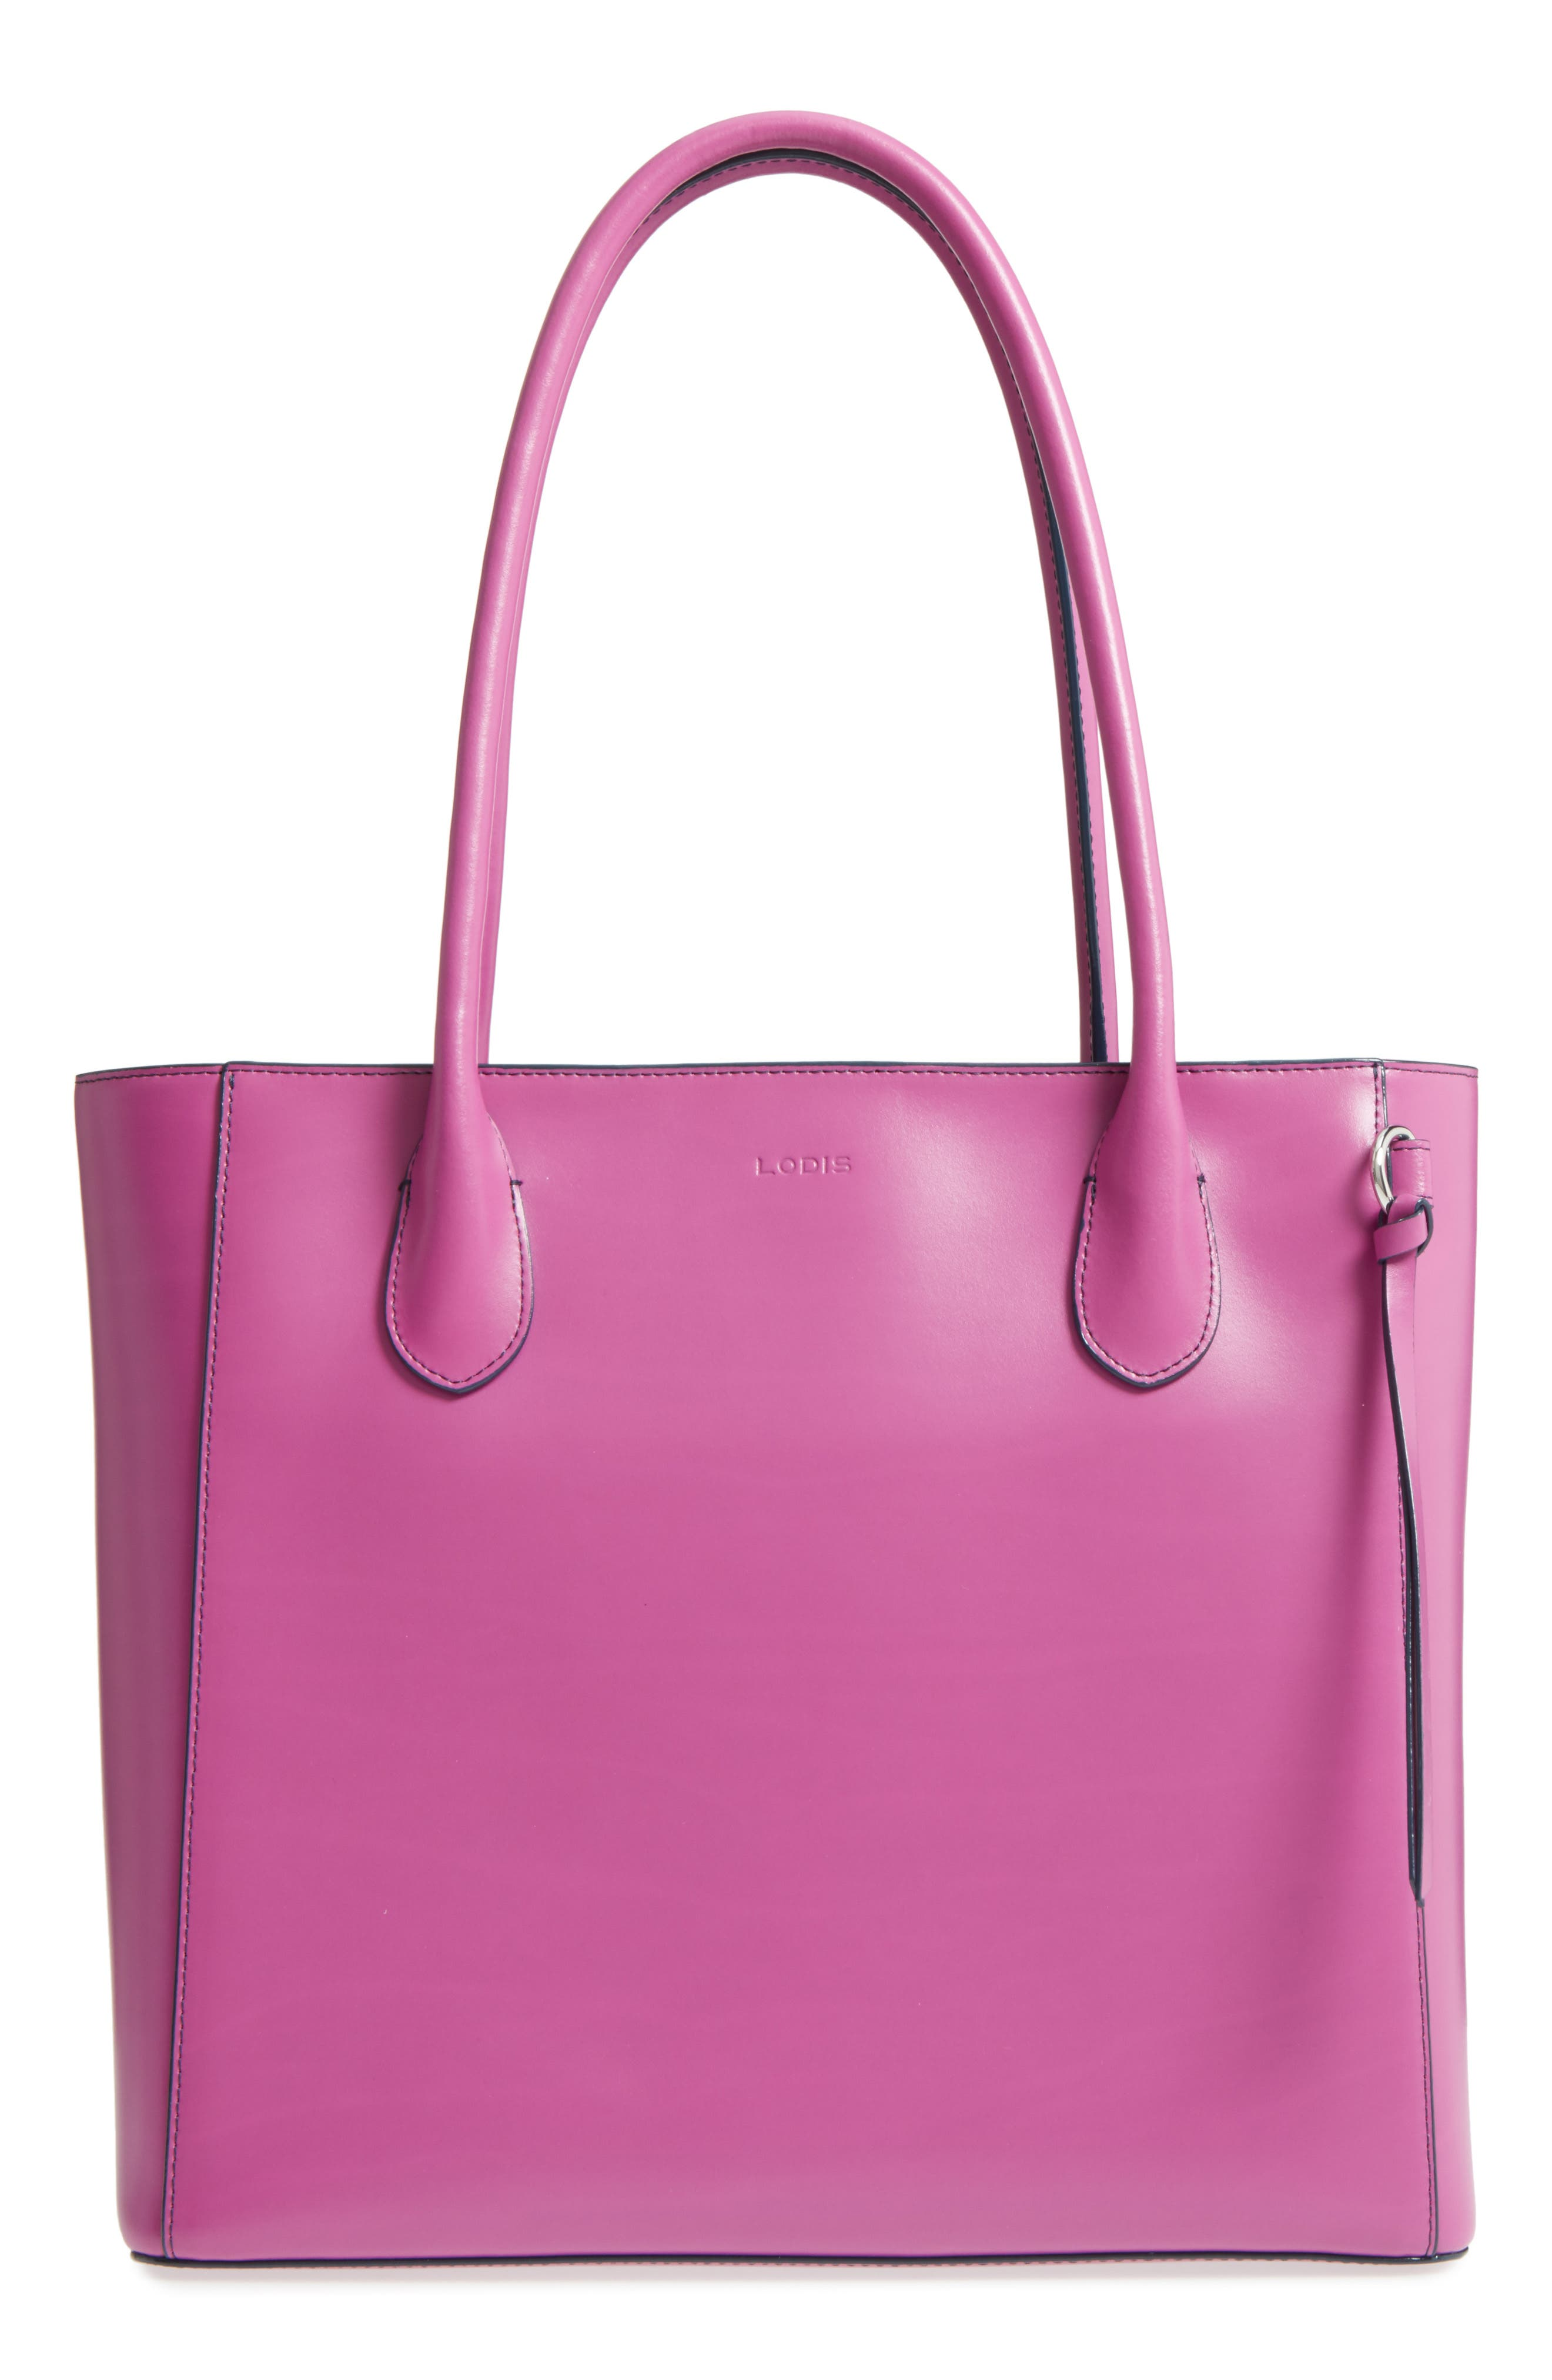 Lodis Cecily RFID Leather Tote